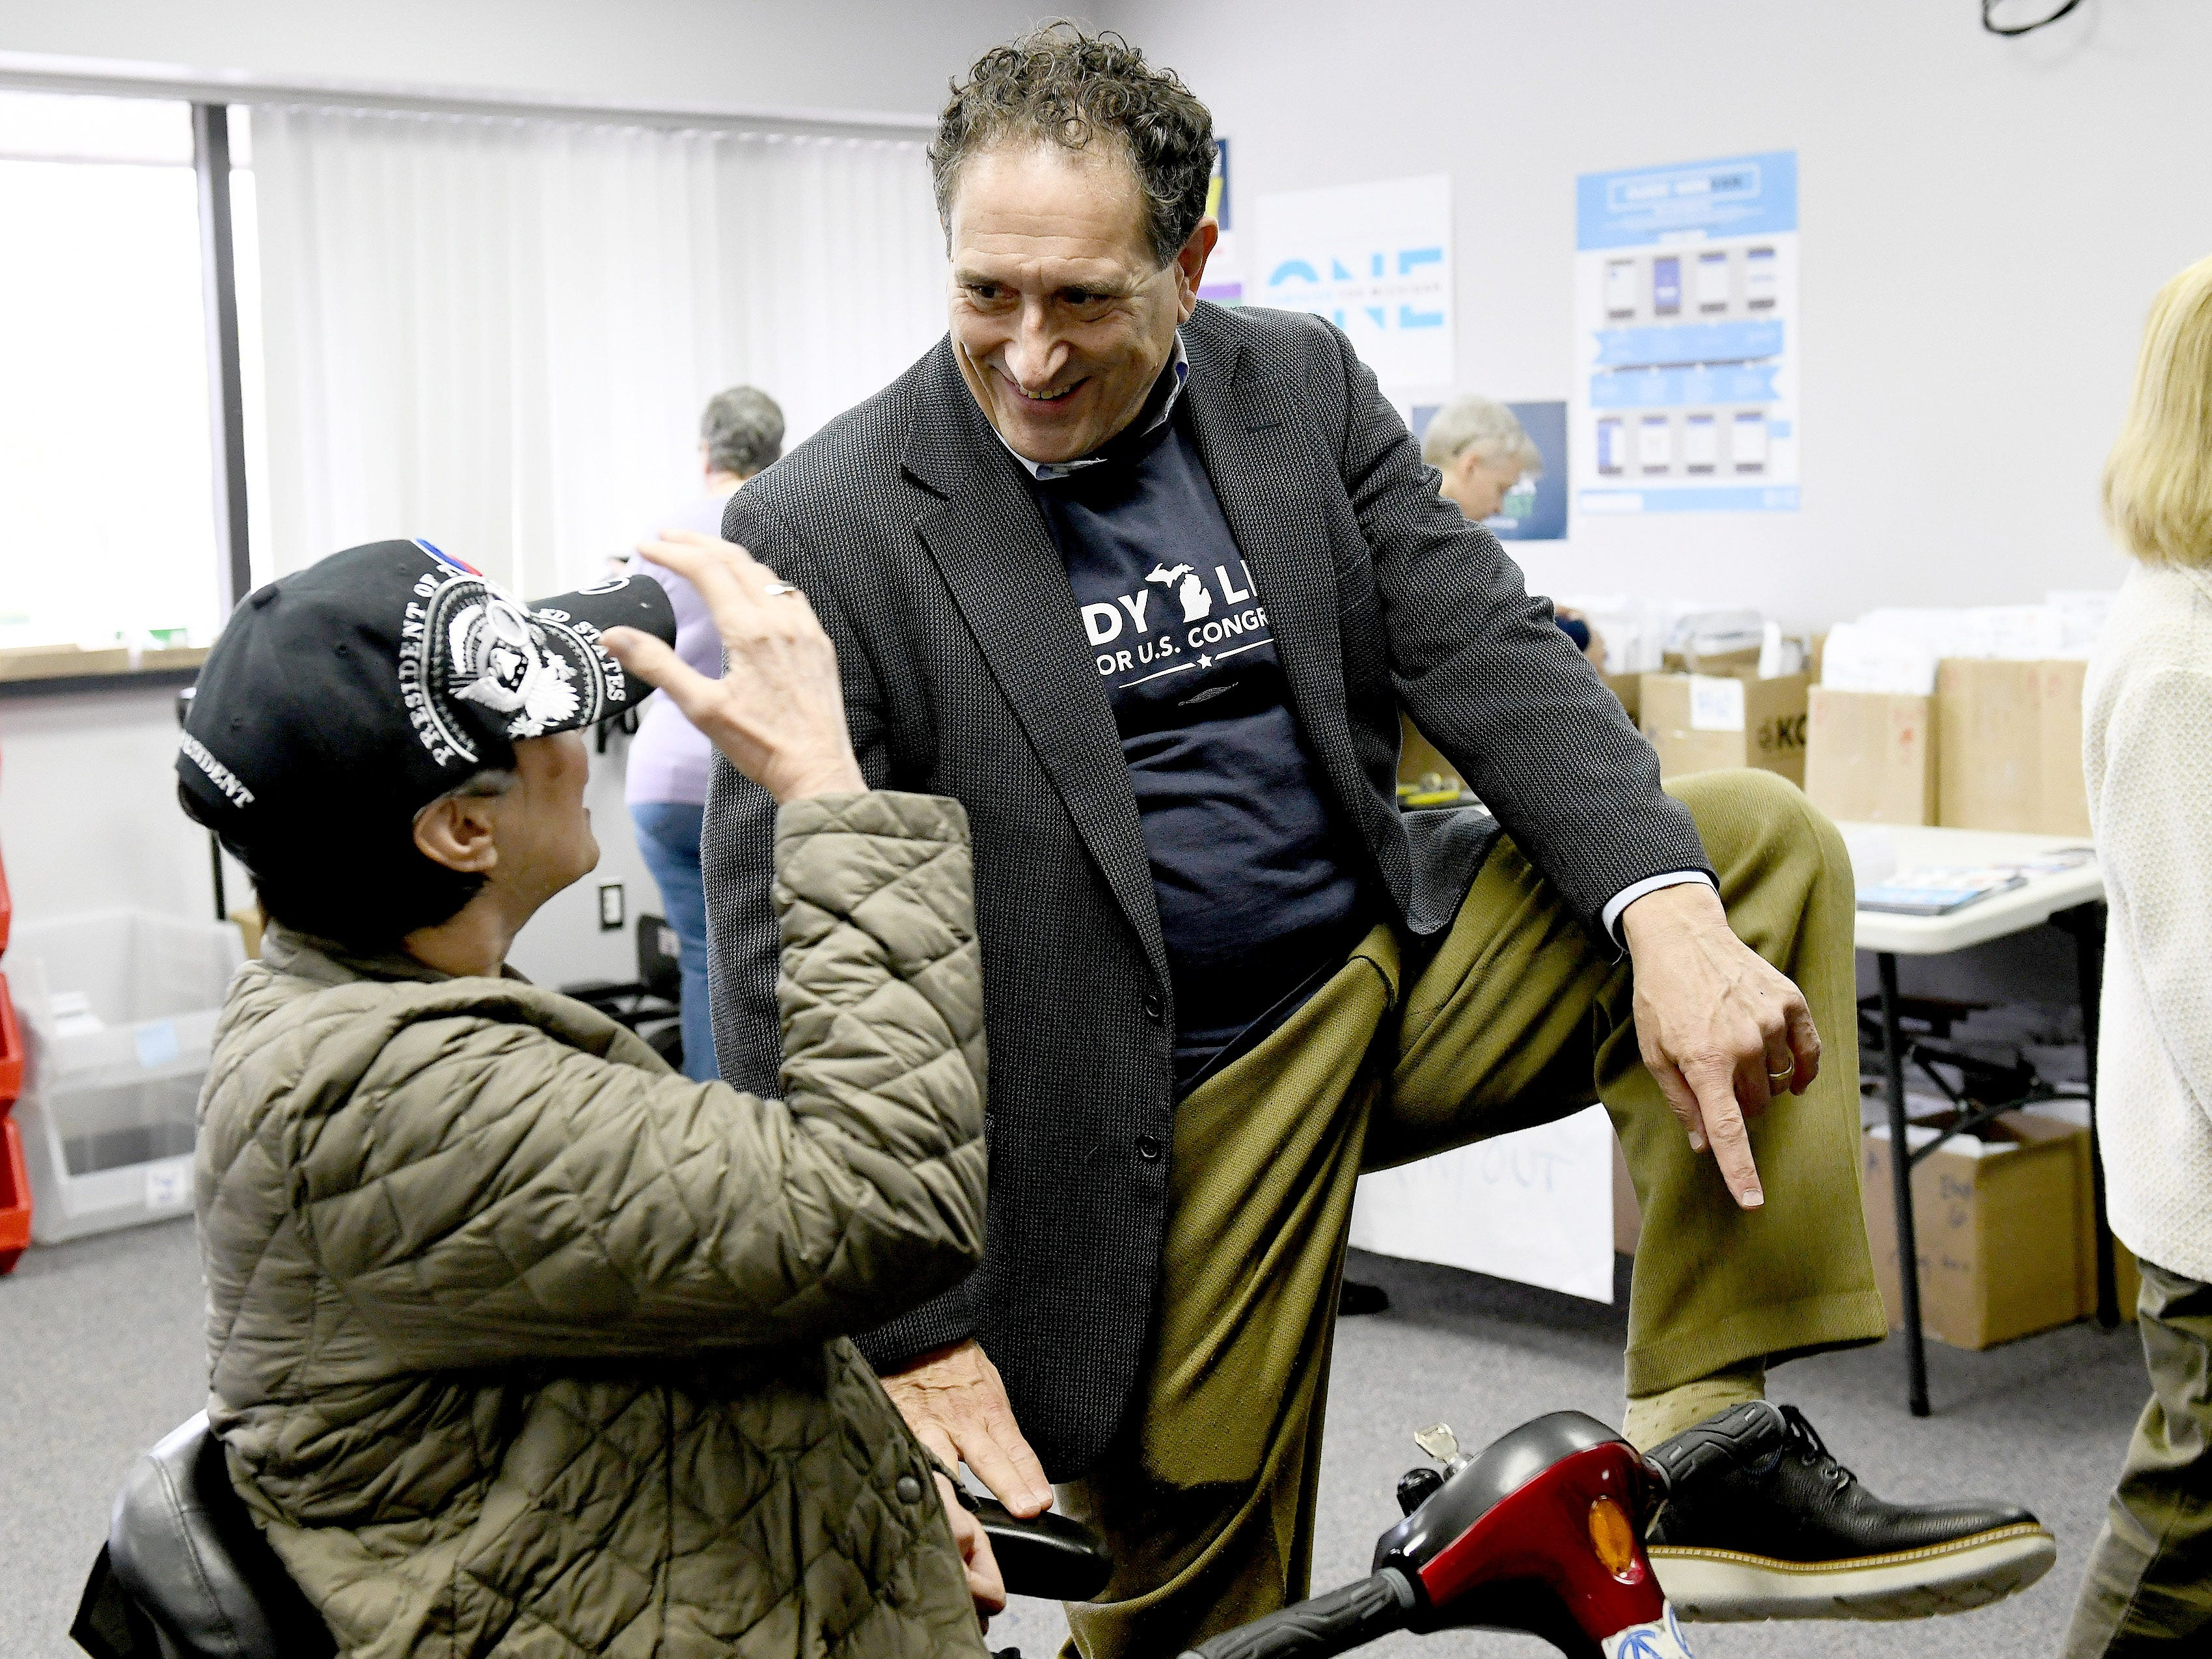 Democrat Andy Levin wins father's U.S. House seat